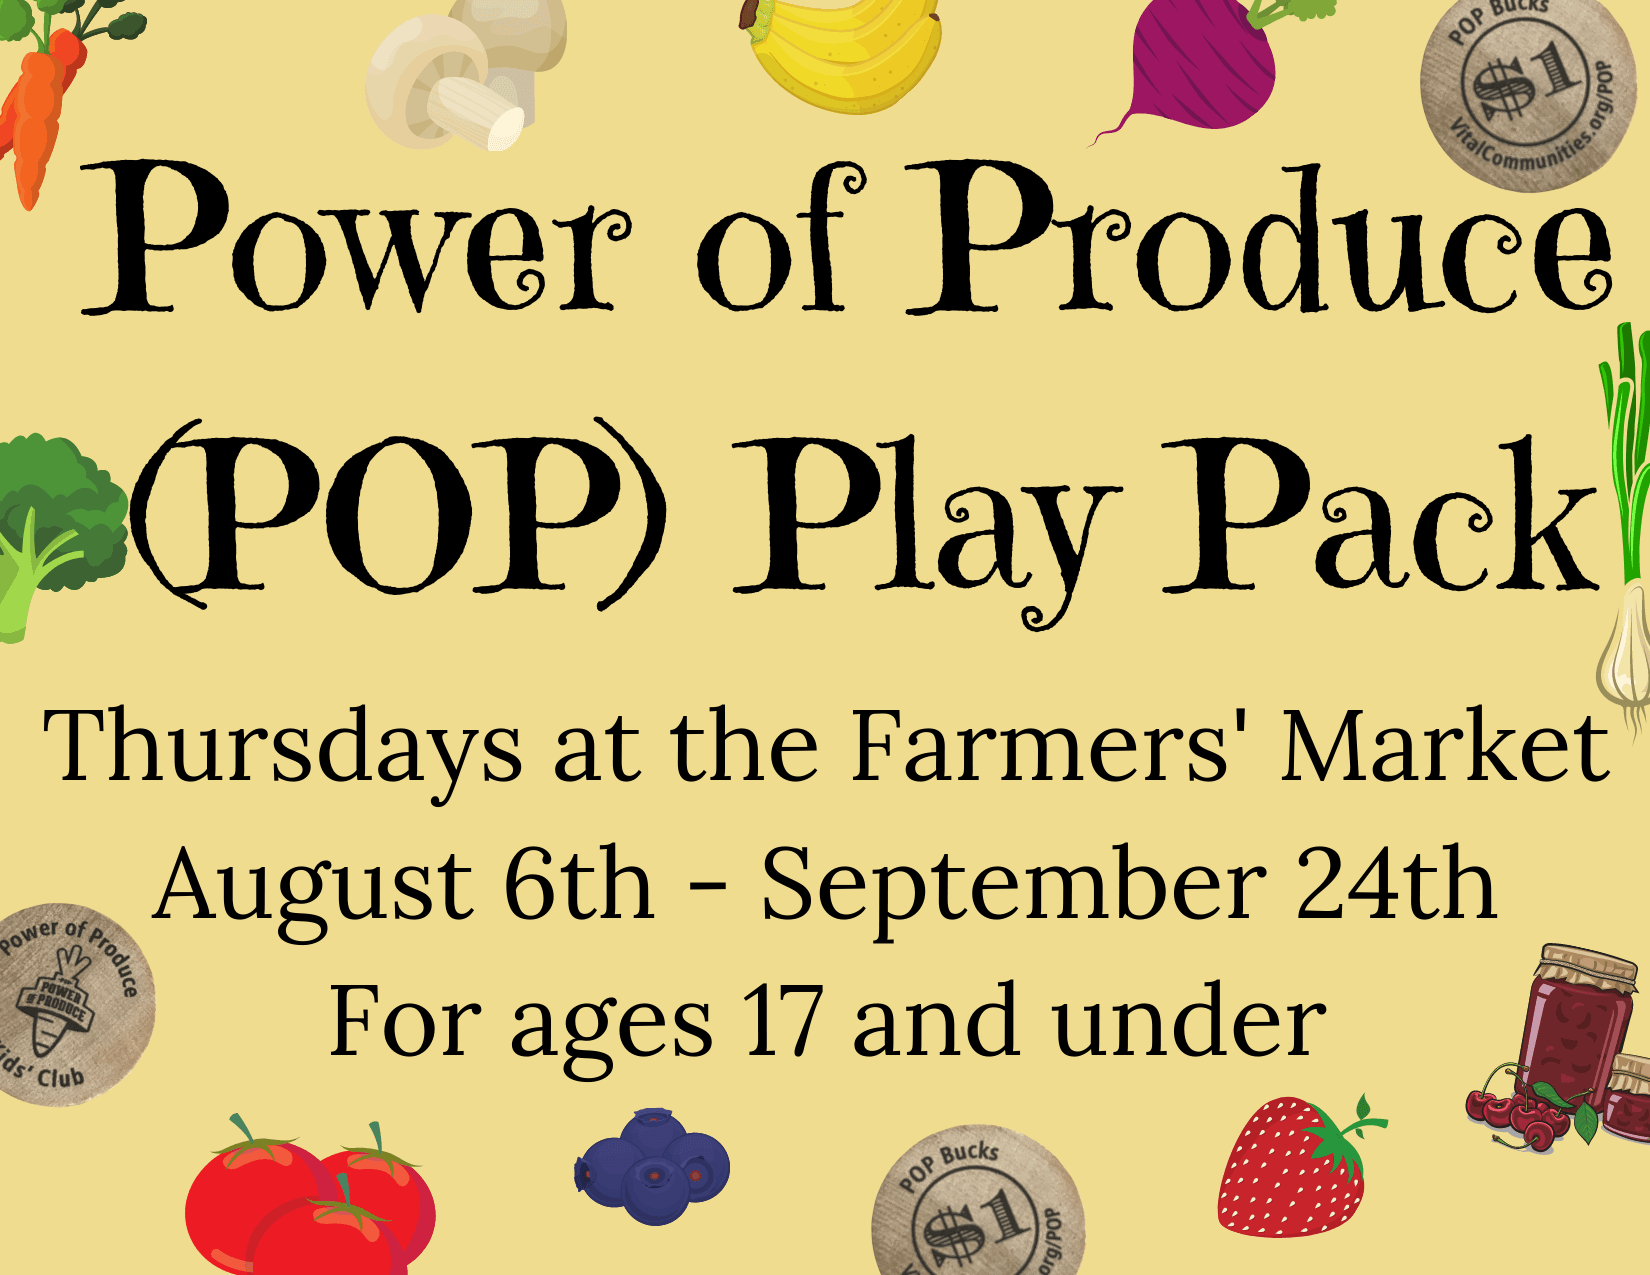 POP Play Pack ad